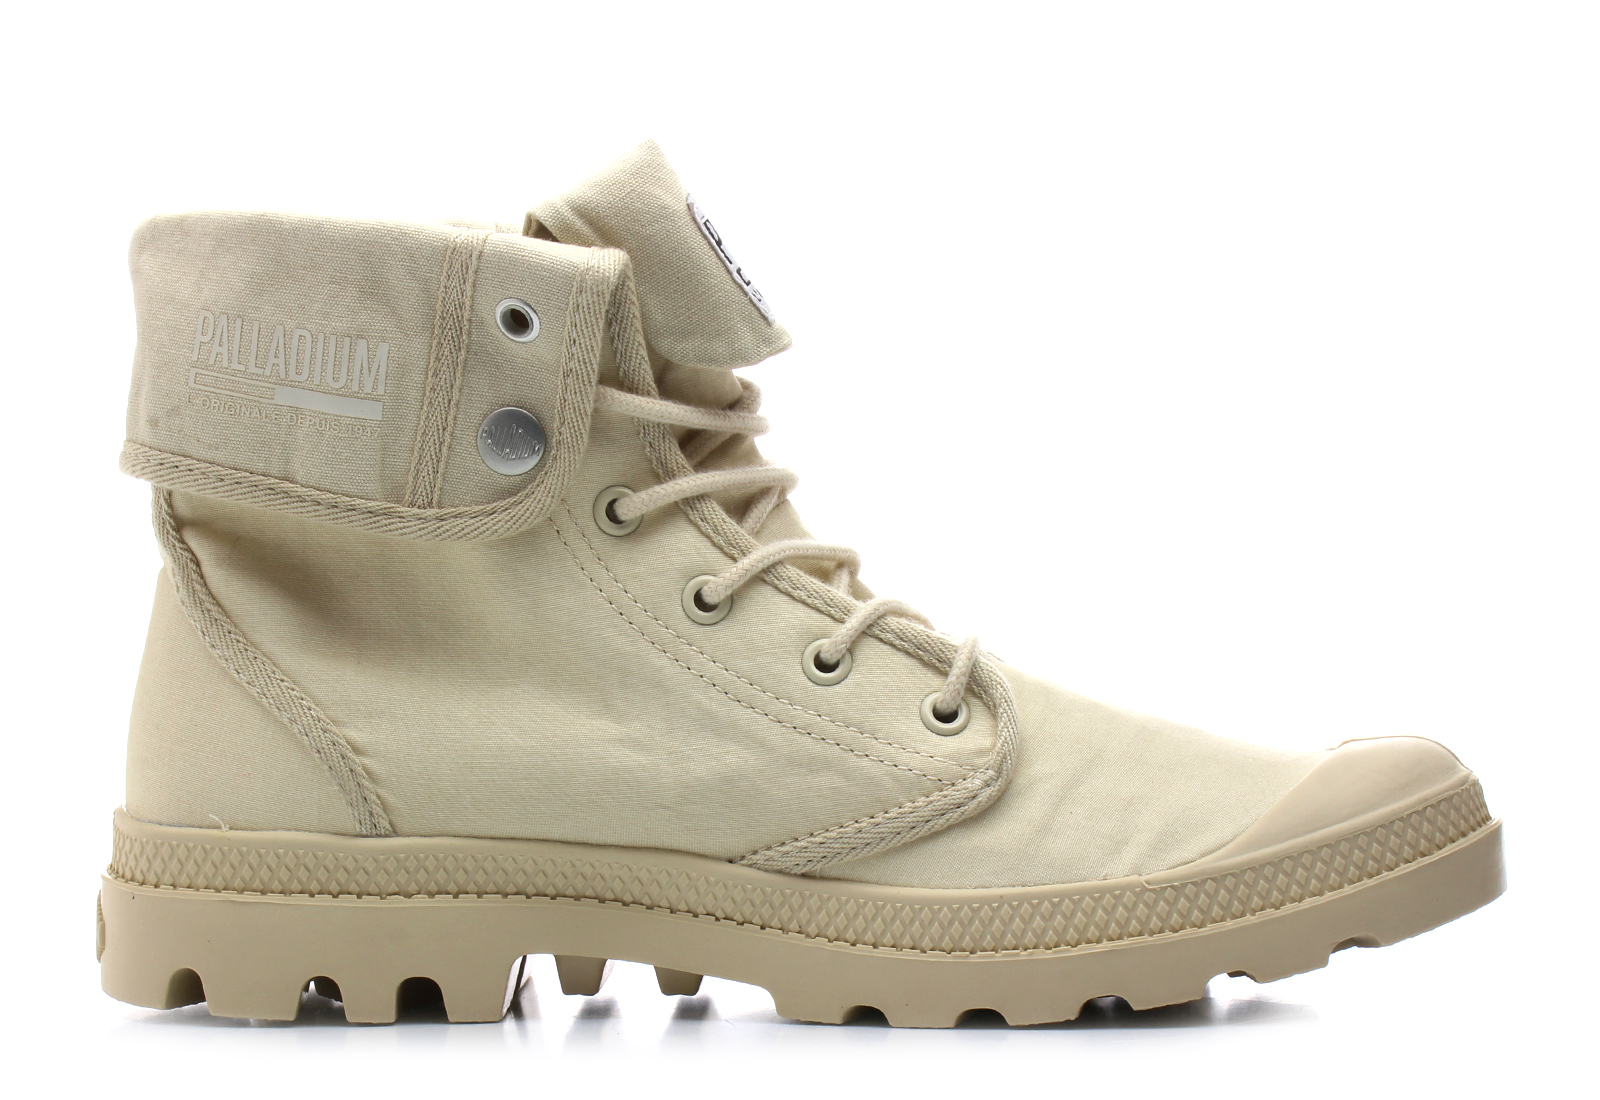 c51fc8769ec Palladium Shoes - Baggy Army Trng Camp - 75492-219-M - Online shop for  sneakers, shoes and boots